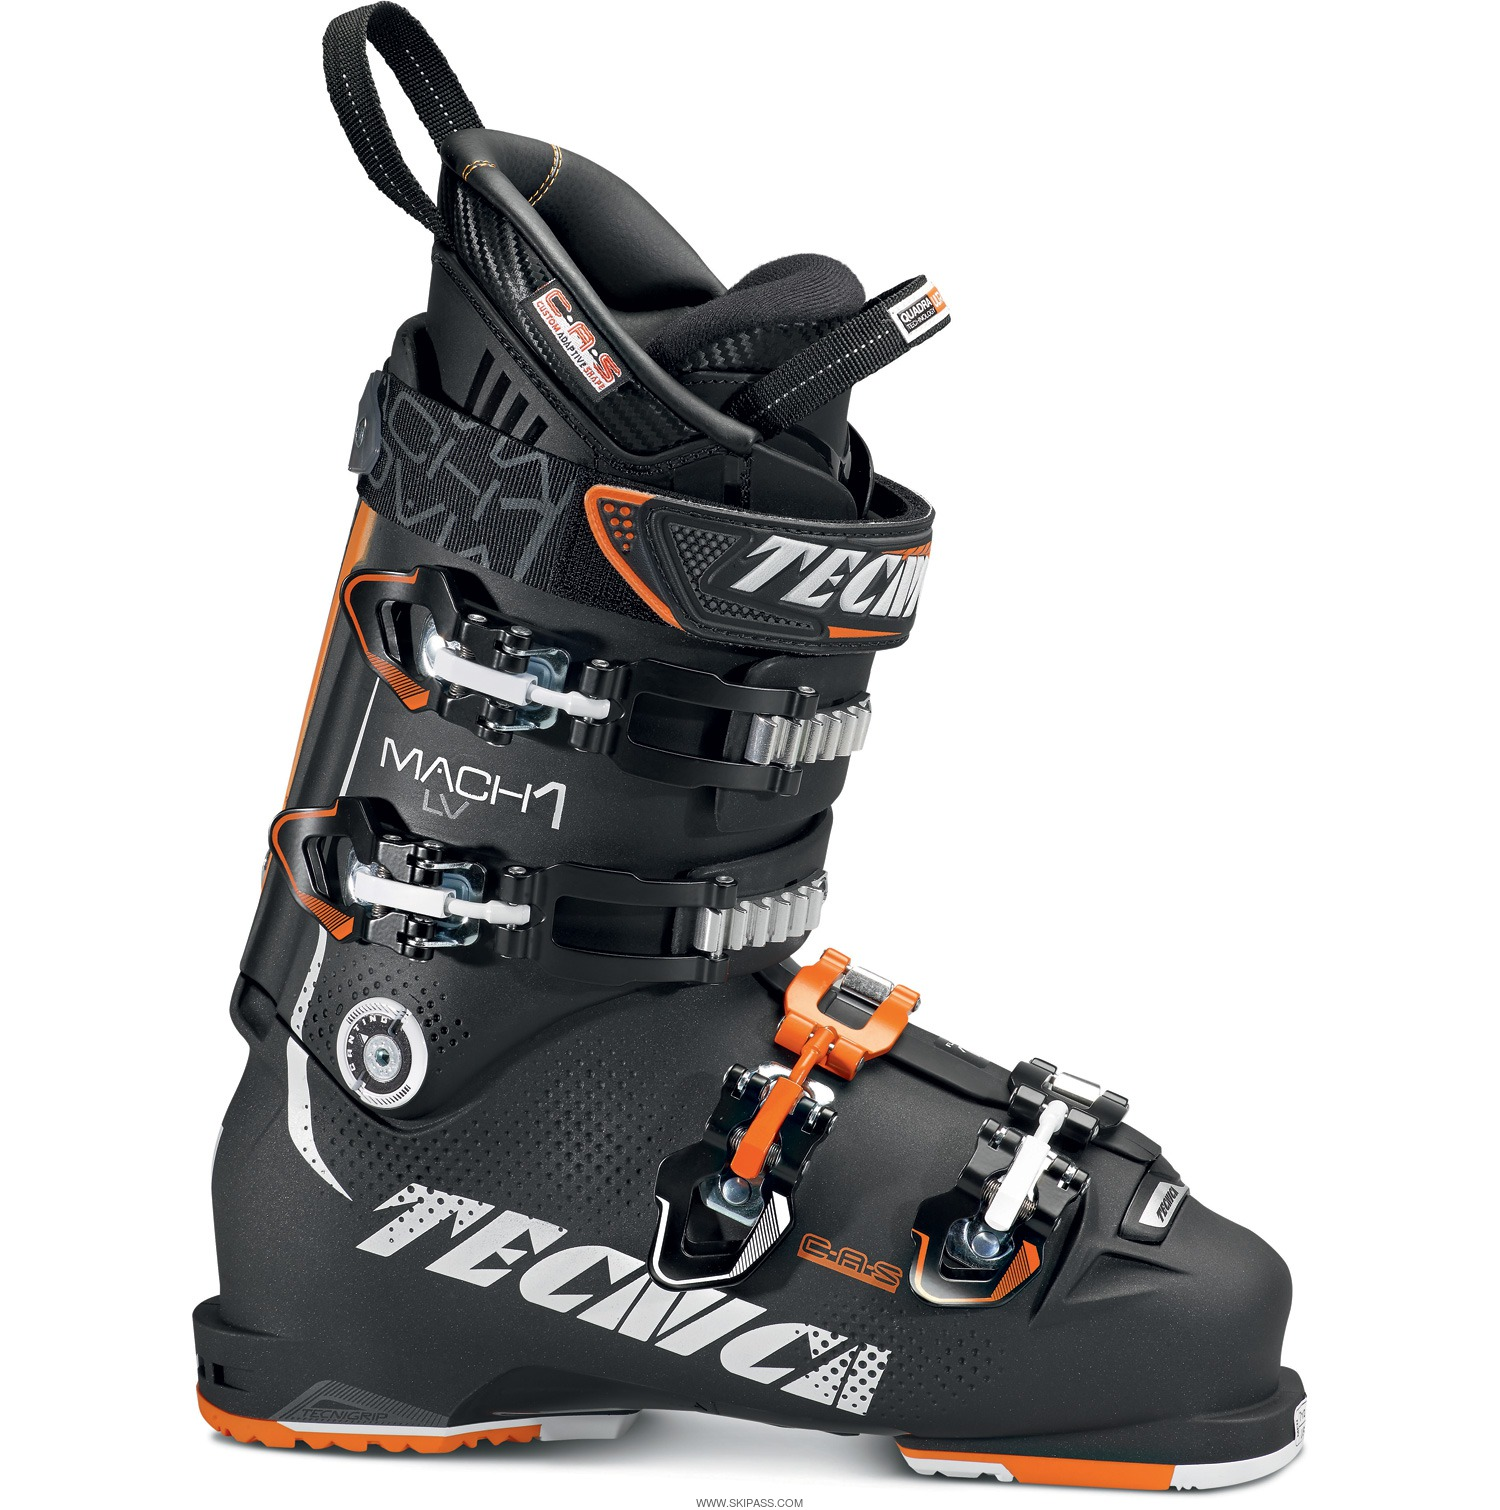 chaussures de ski tecnica mach1 110 lv freestyle sport. Black Bedroom Furniture Sets. Home Design Ideas